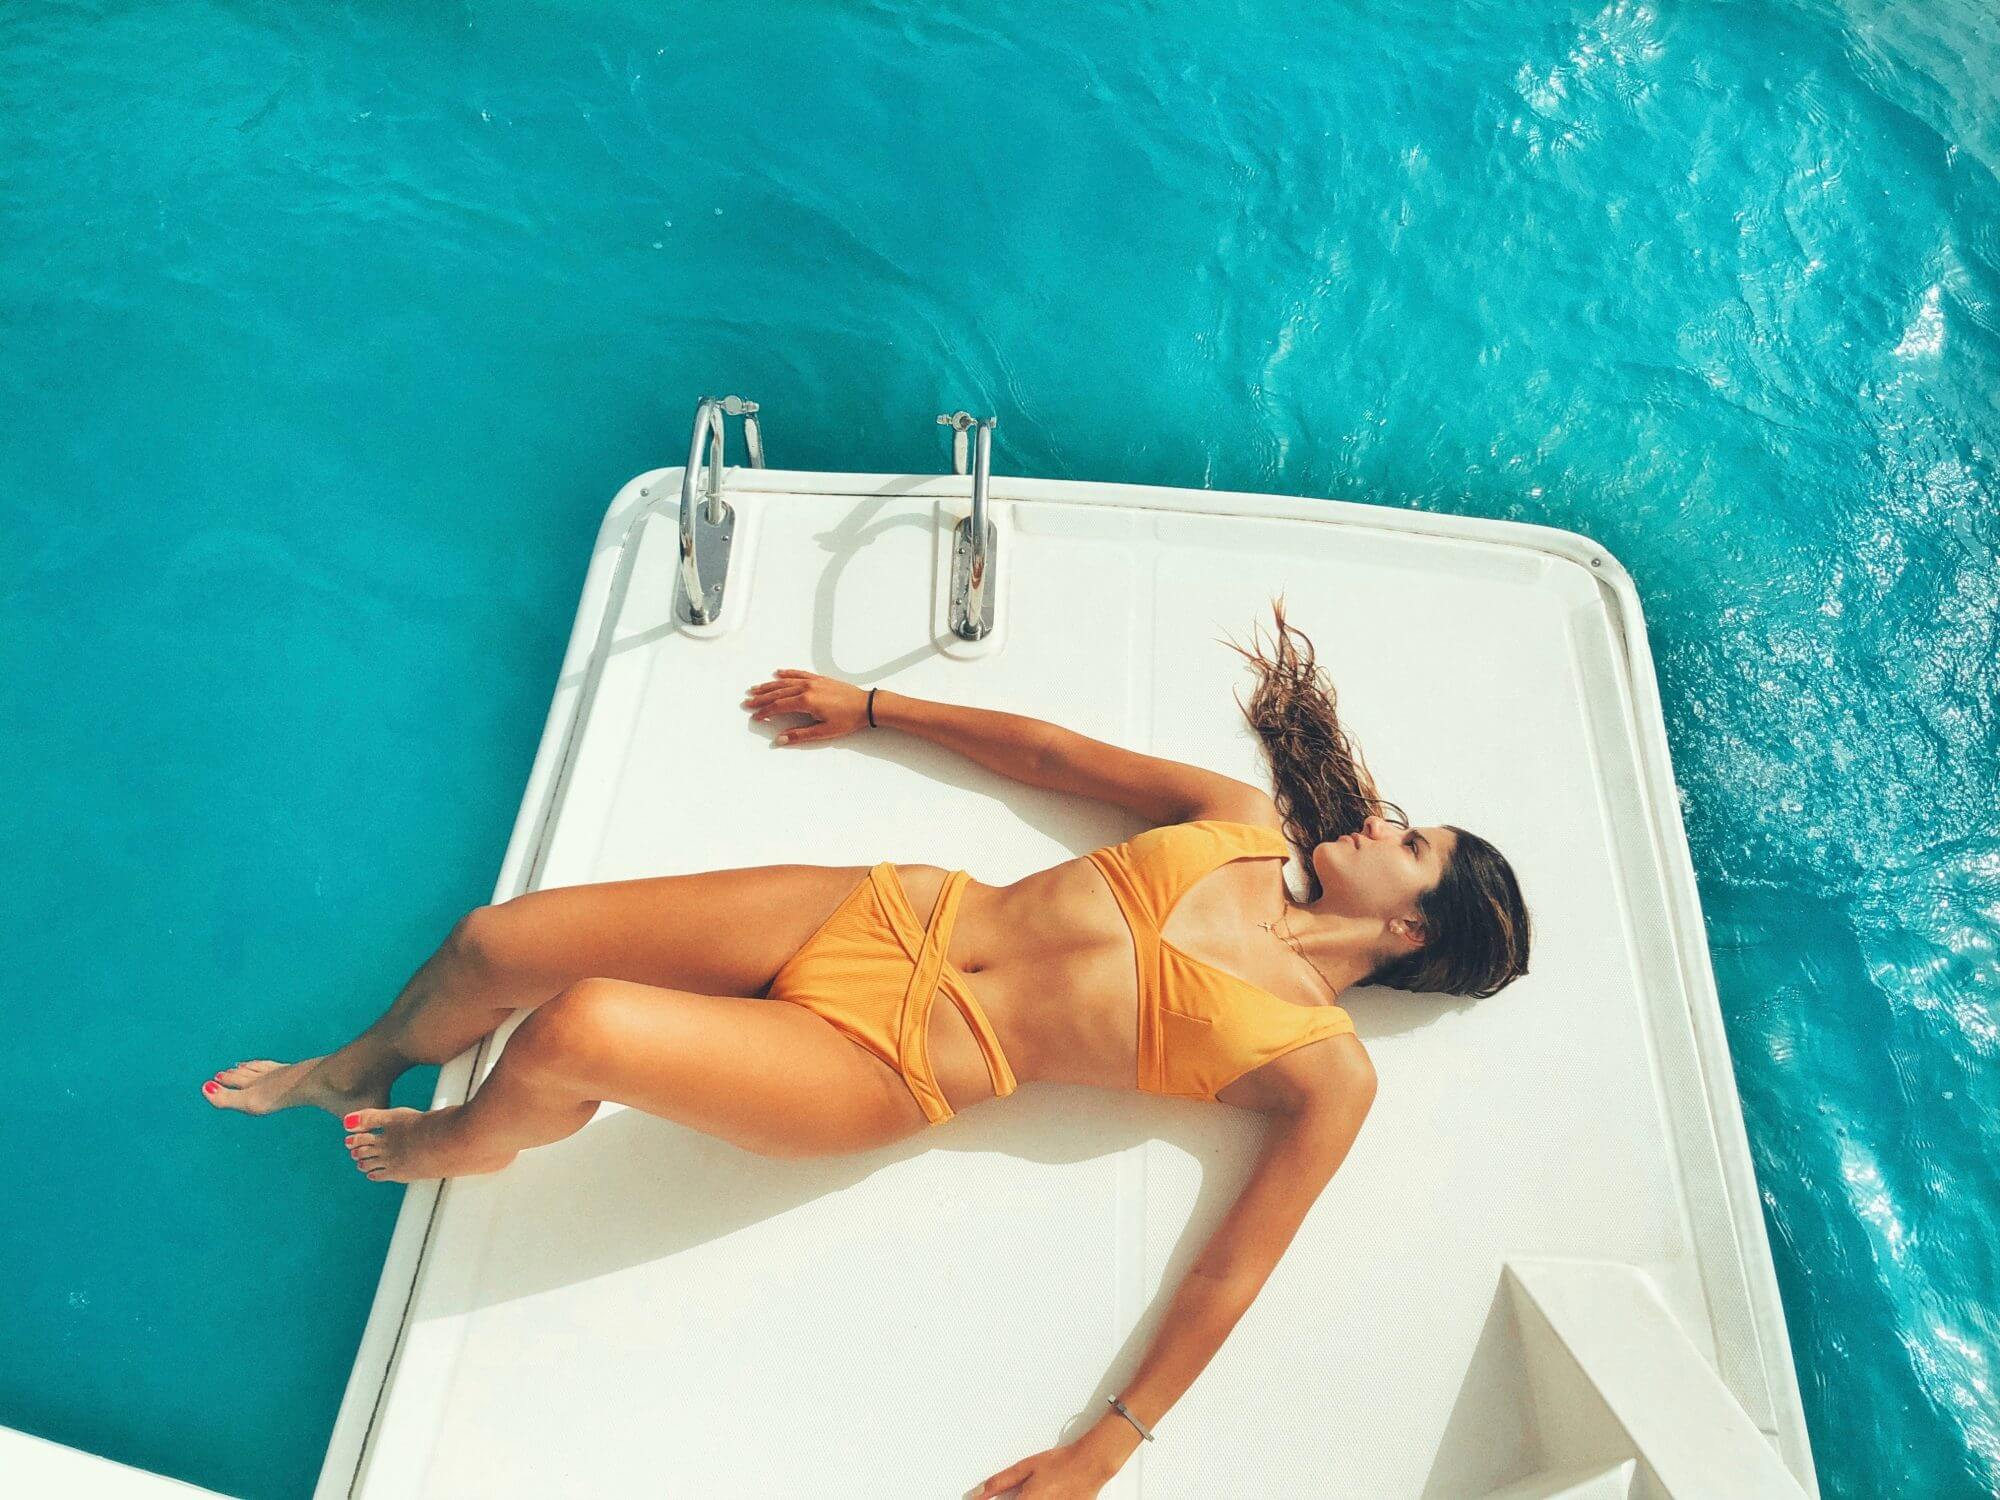 Liposuction Can Leave You With Loose Skin, Tighten Up Post-Procedure With J Plasma